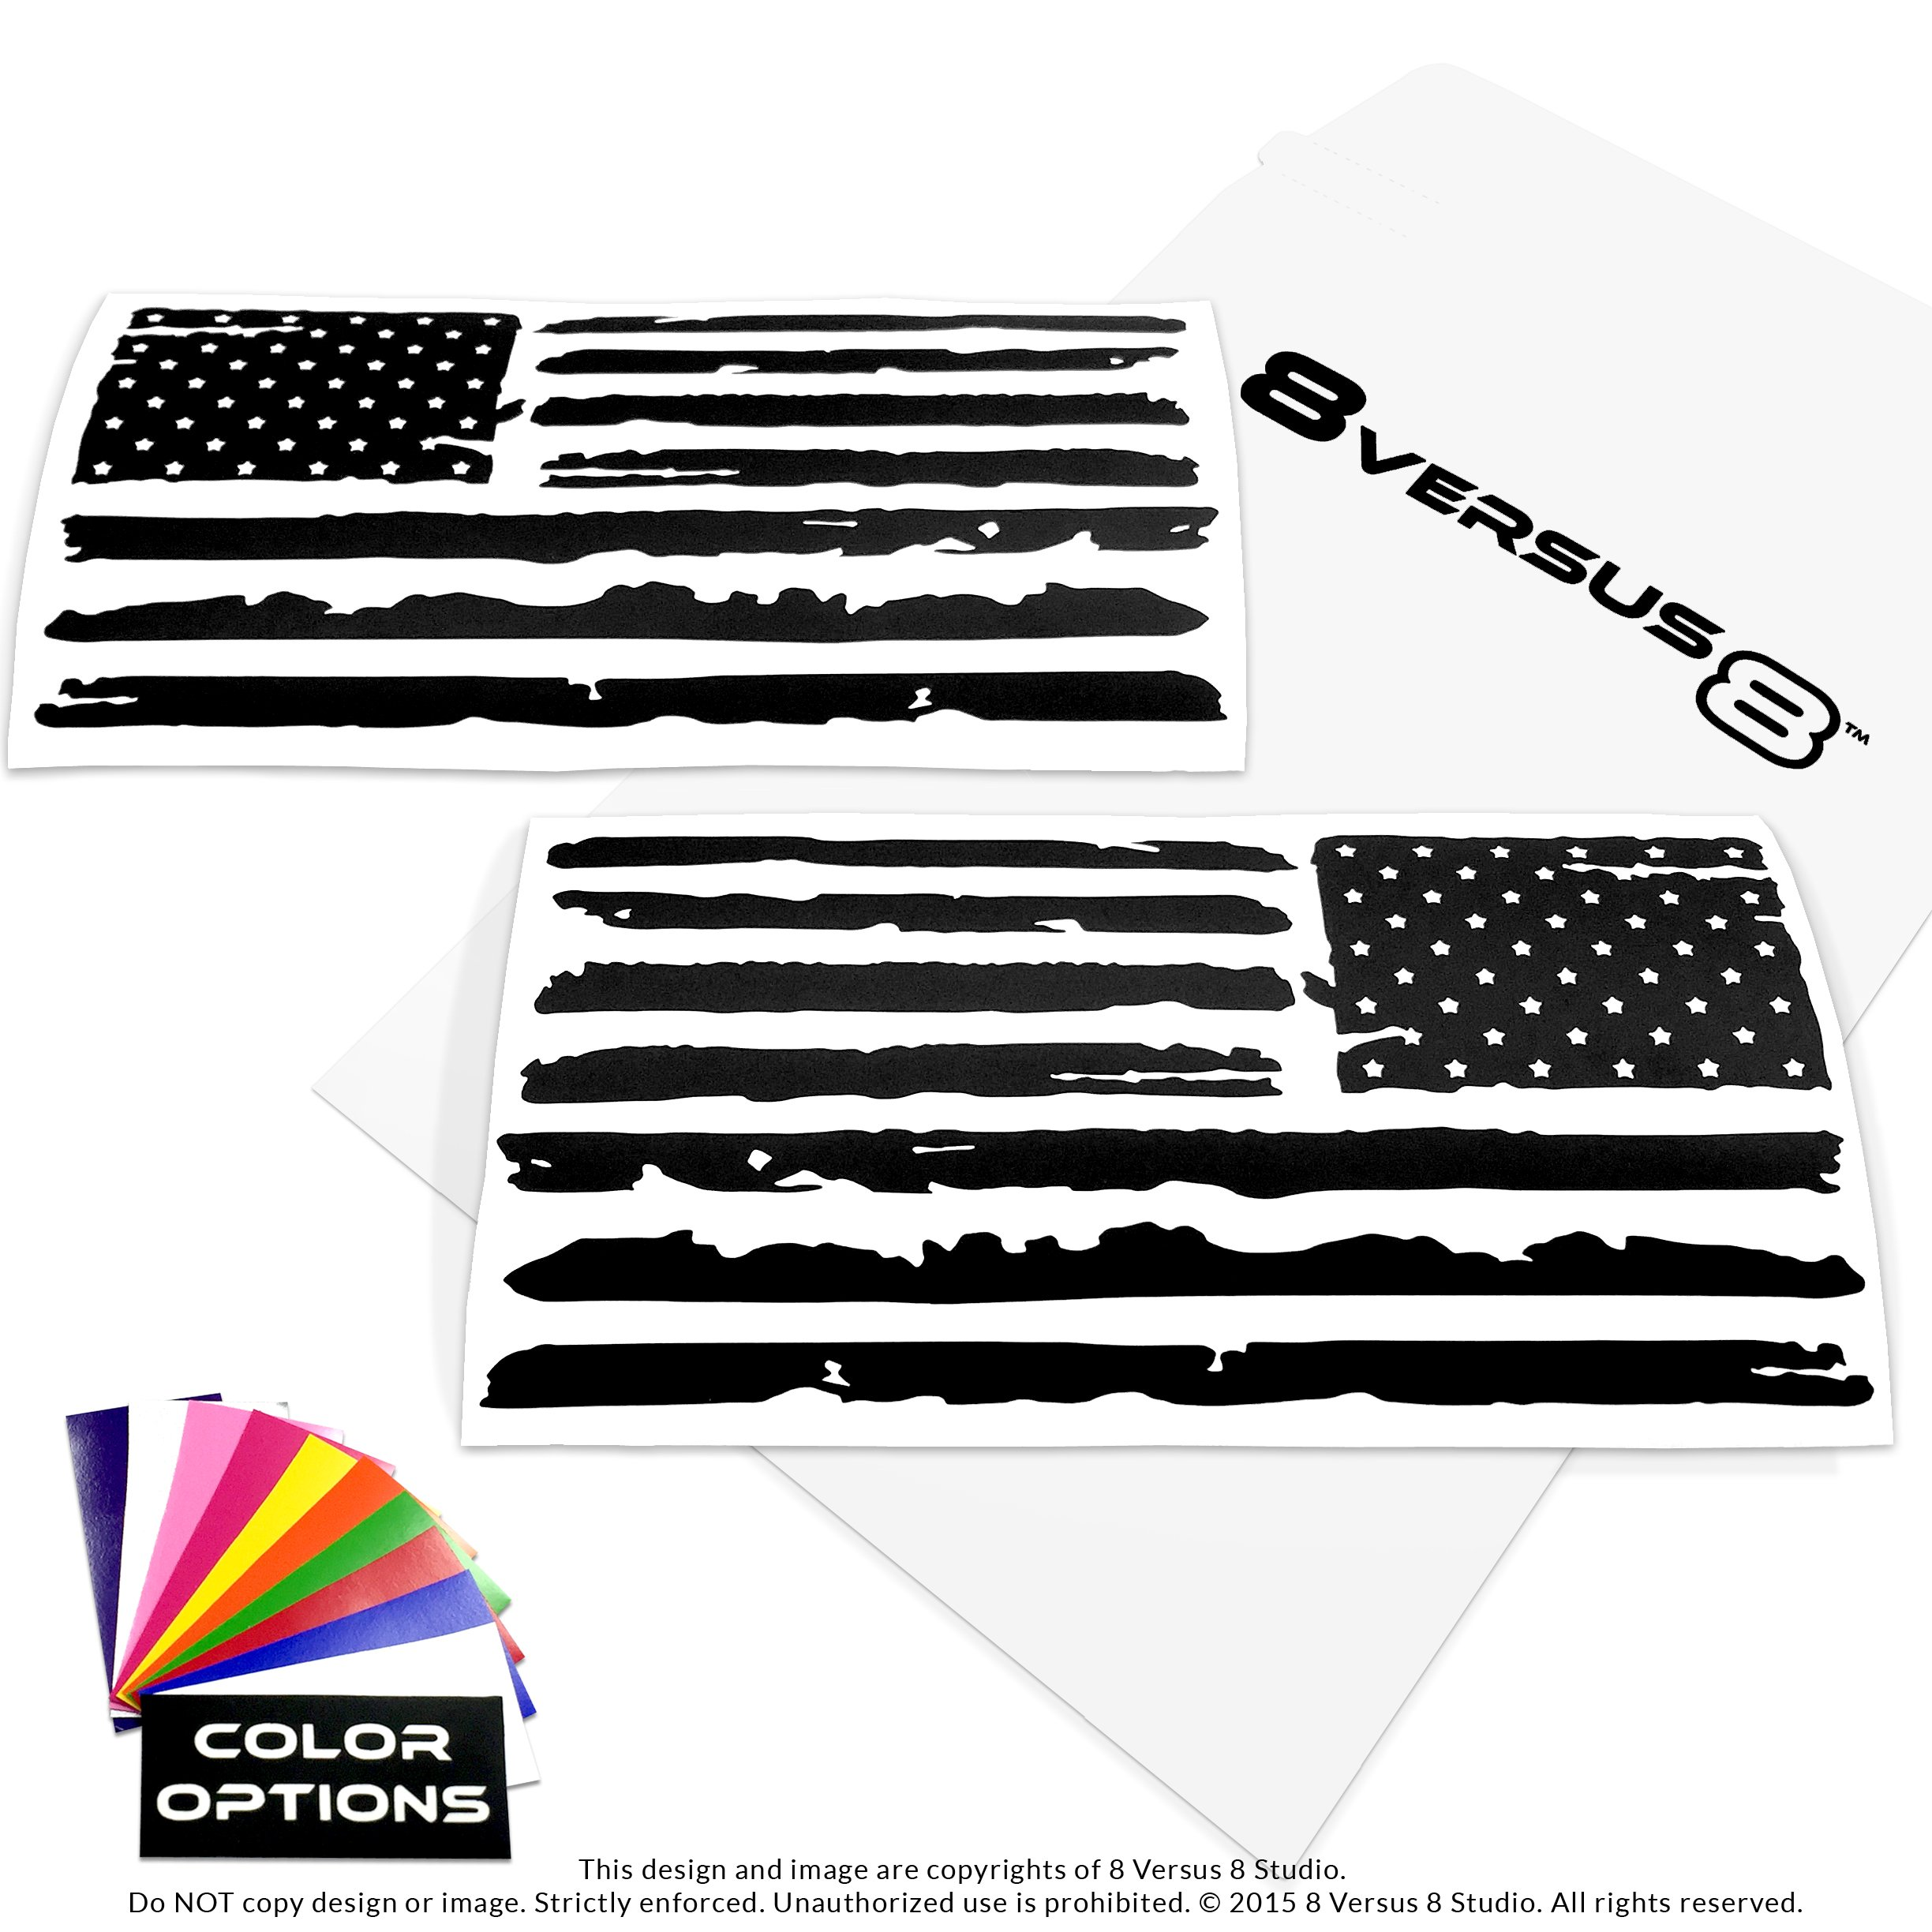 Distressed Flag Decal Sticker - Quantity: 2 - Indoors or Outdoors - Cars, Laptops, Walls, Windows, etc. (6.5'' wide x 3.2'' tall, Matte Black (not glossy))